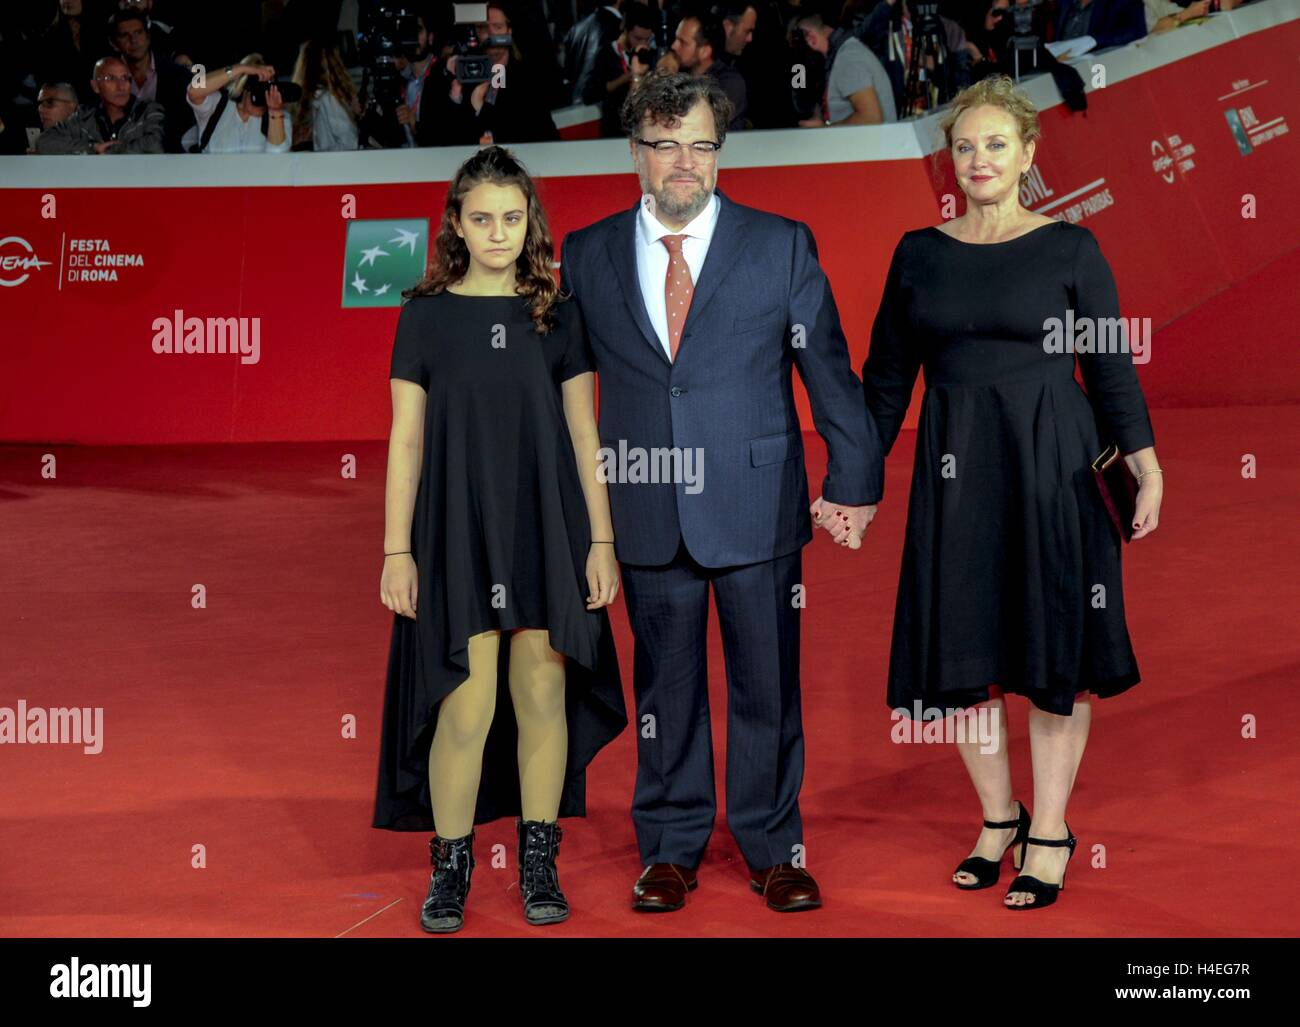 The director Kenneth Lonergan presents his film 'Manchester by the Sea' at the 11th festival in Rome at - Stock Image